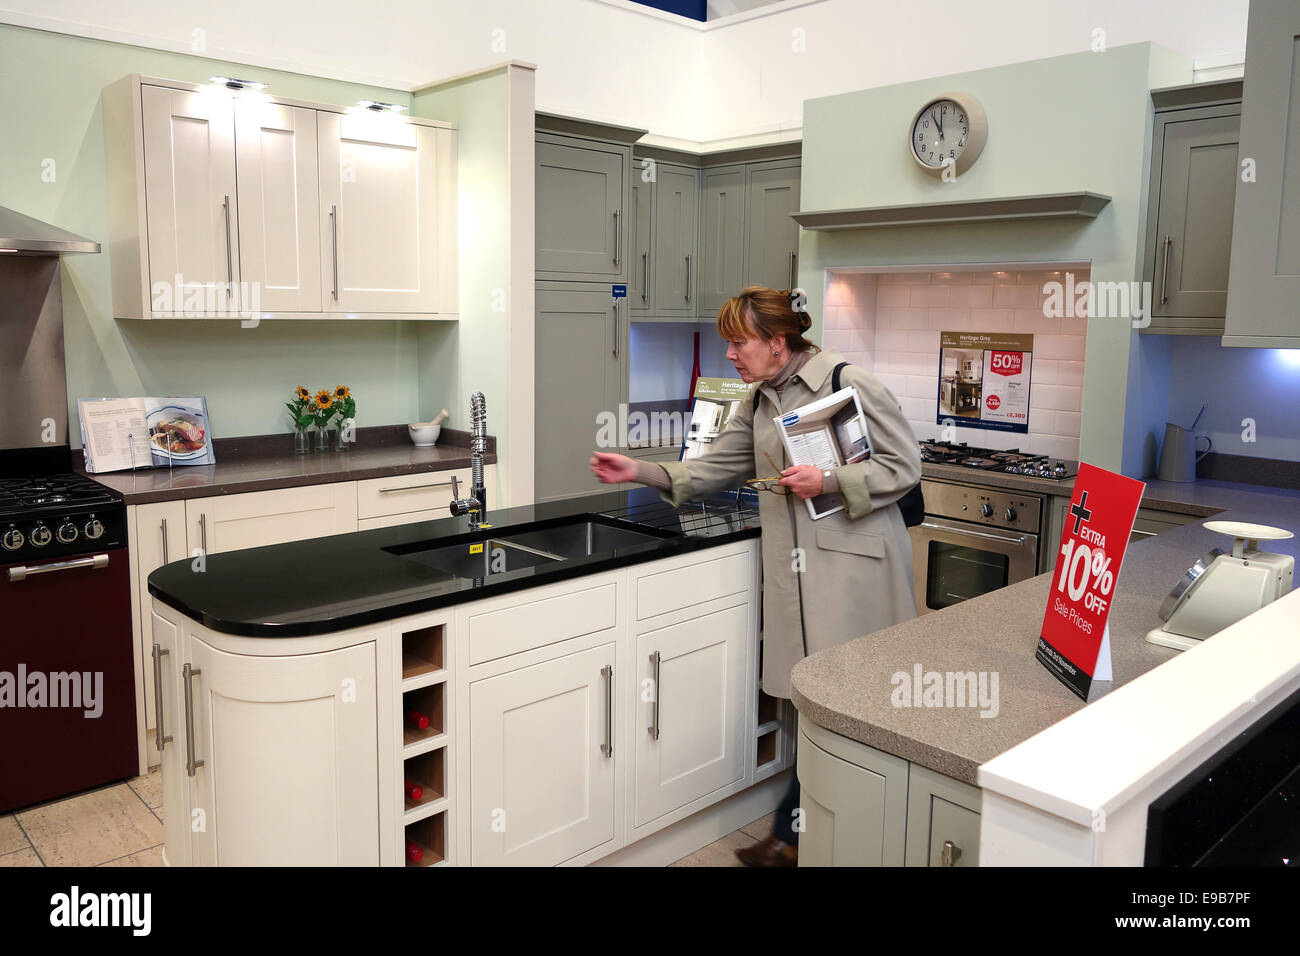 kitchen kitchens stock photos kitchen kitchens stock images alamy